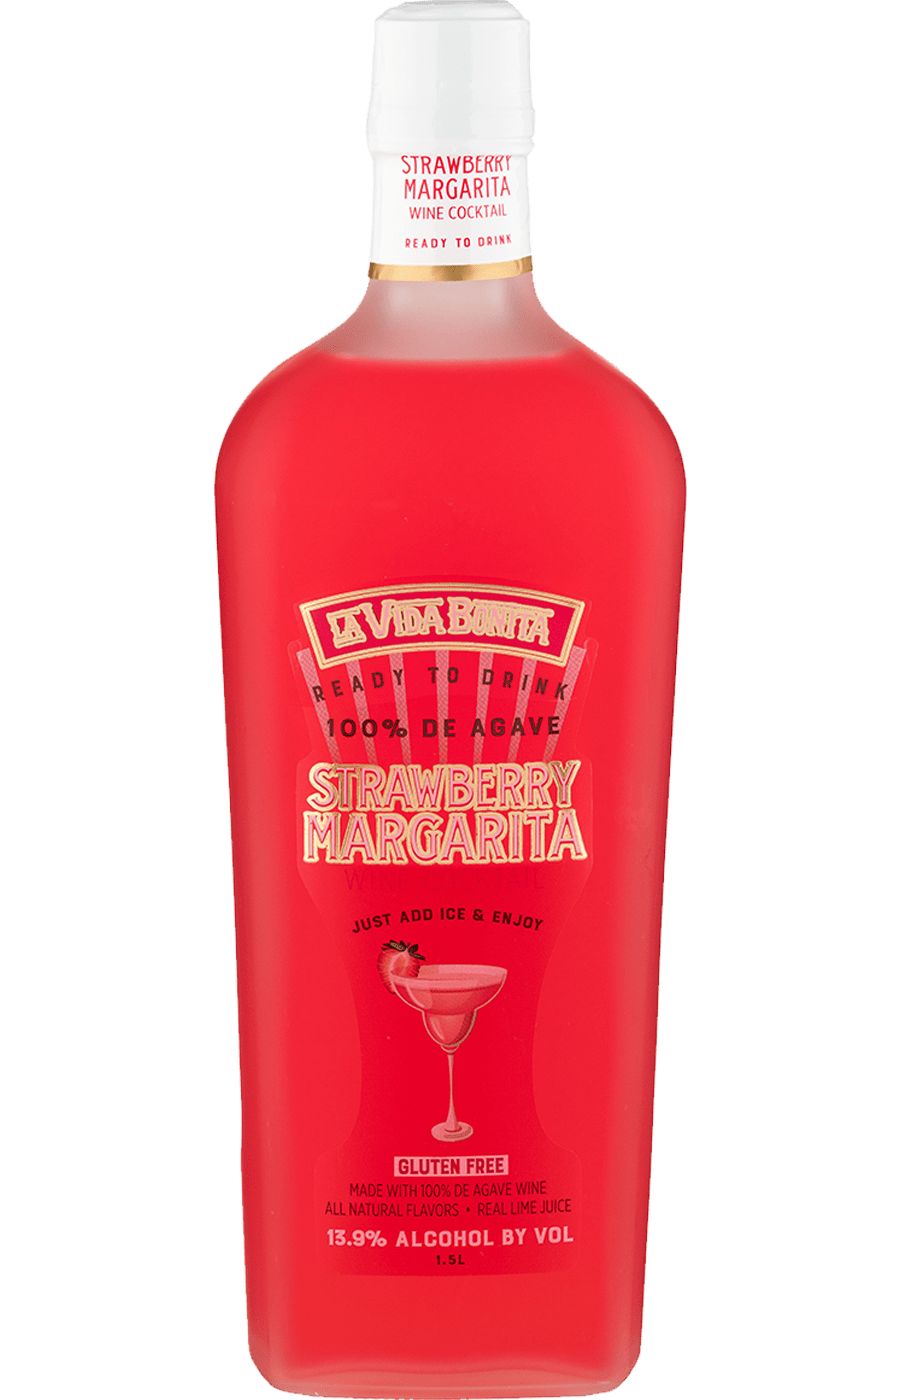 La Vida Bonita Strawberry Margarita Mpl Brands